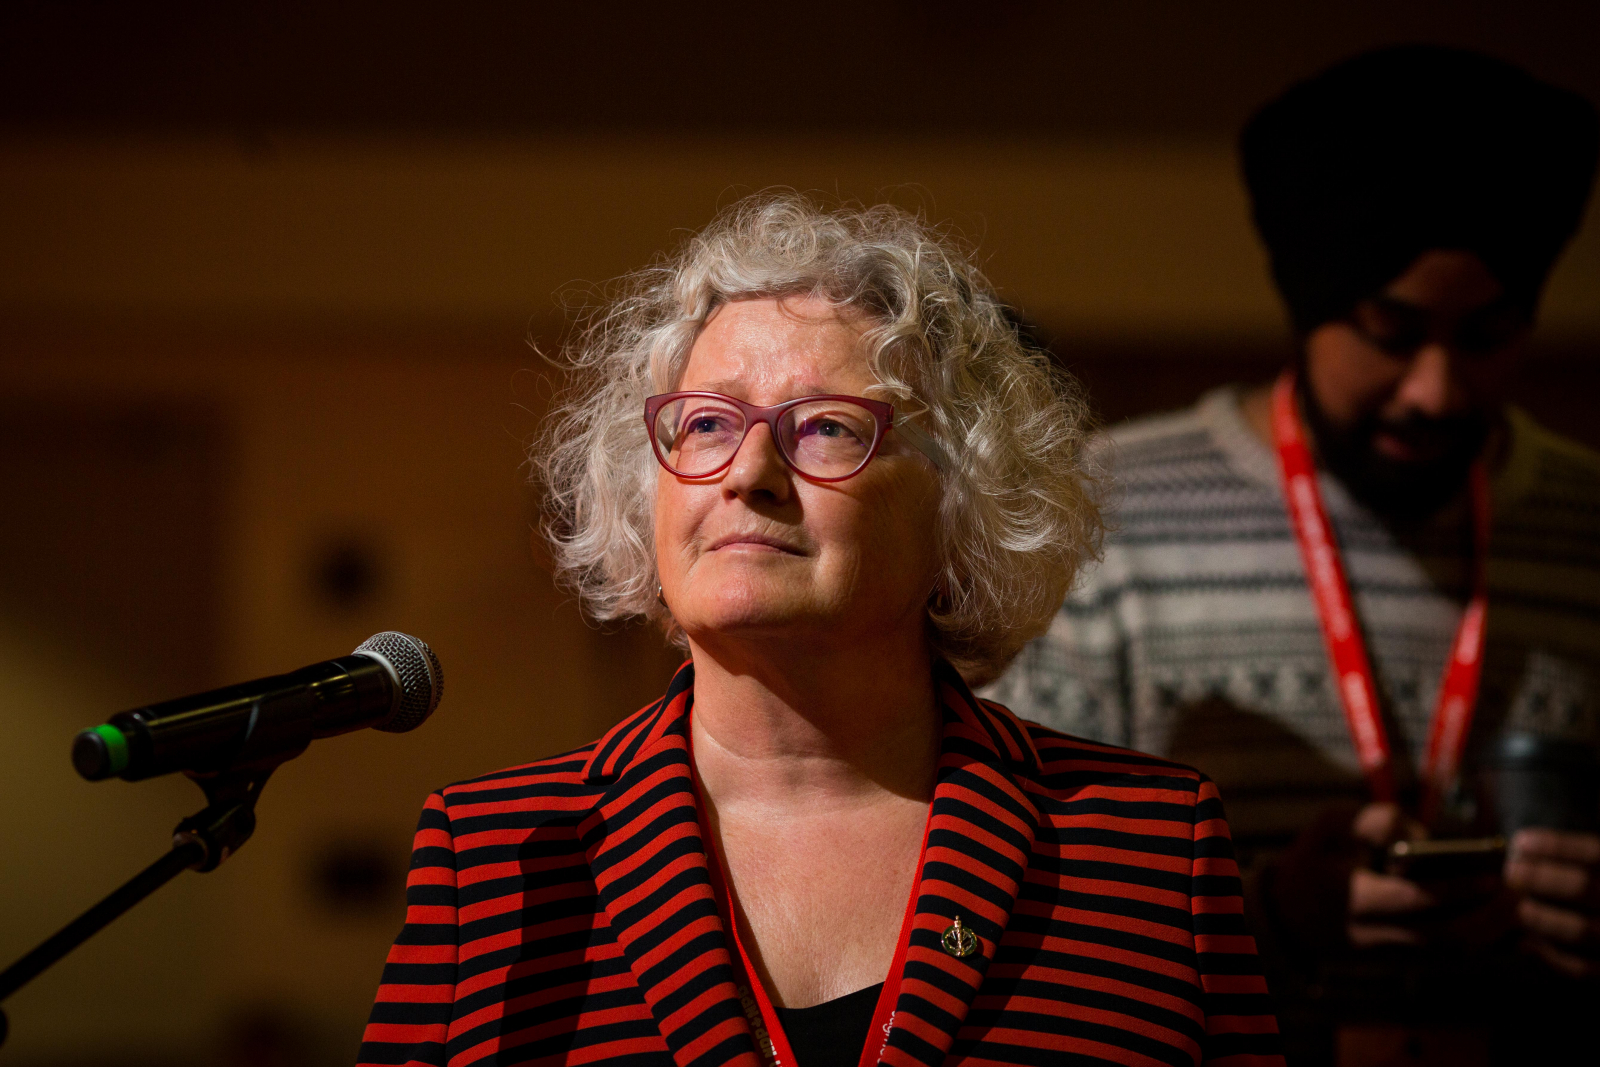 Edmonton-Strathcona NDP MP Linda Duncan spoke to a party resolution to strengthen environmental laws at the NDP convention in Ottawa on Feb. 16, 2018. Photo by Alex Tétreault